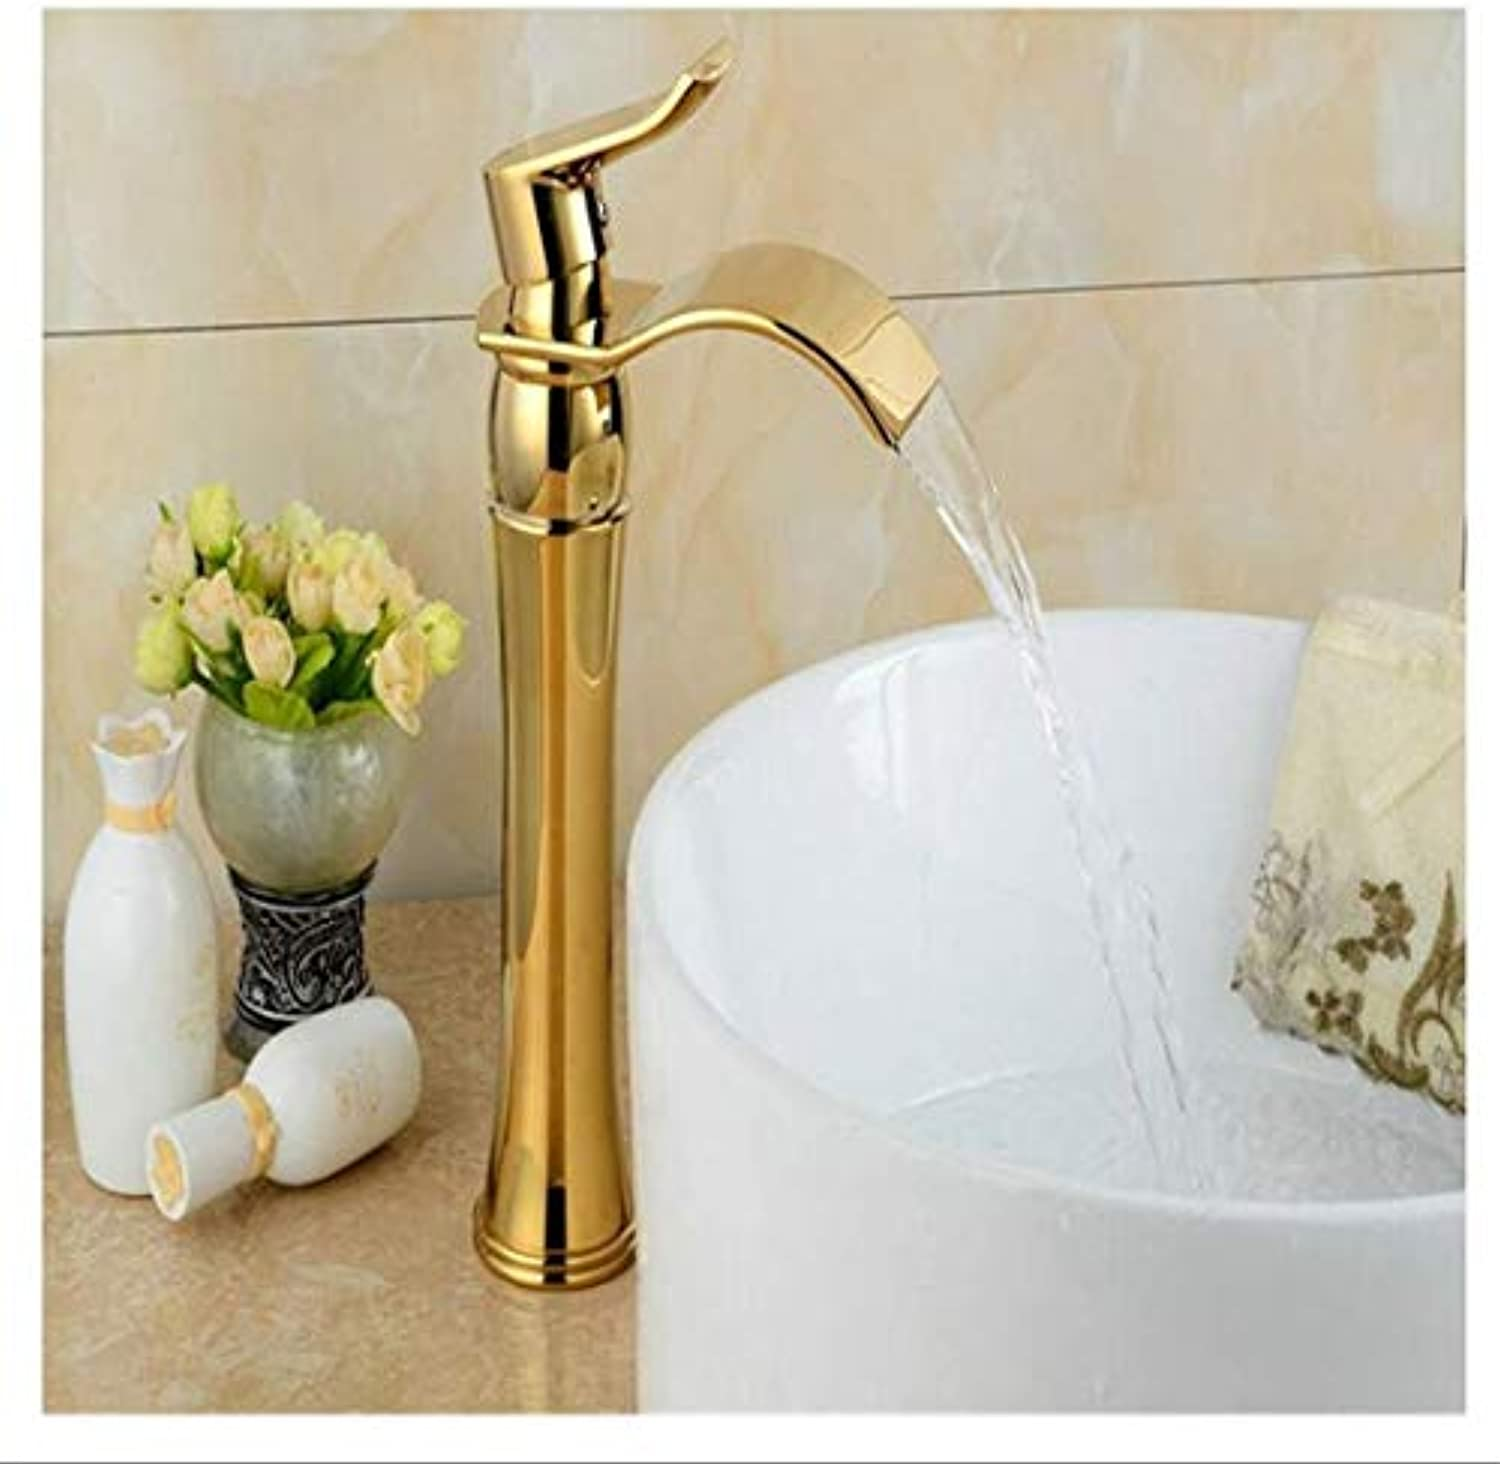 Vintage Brass Hot And Cold Water RotationGold Faucet Single Handle Antique Kitchen Basin Mixer Taps Single Hole Sink Faucet